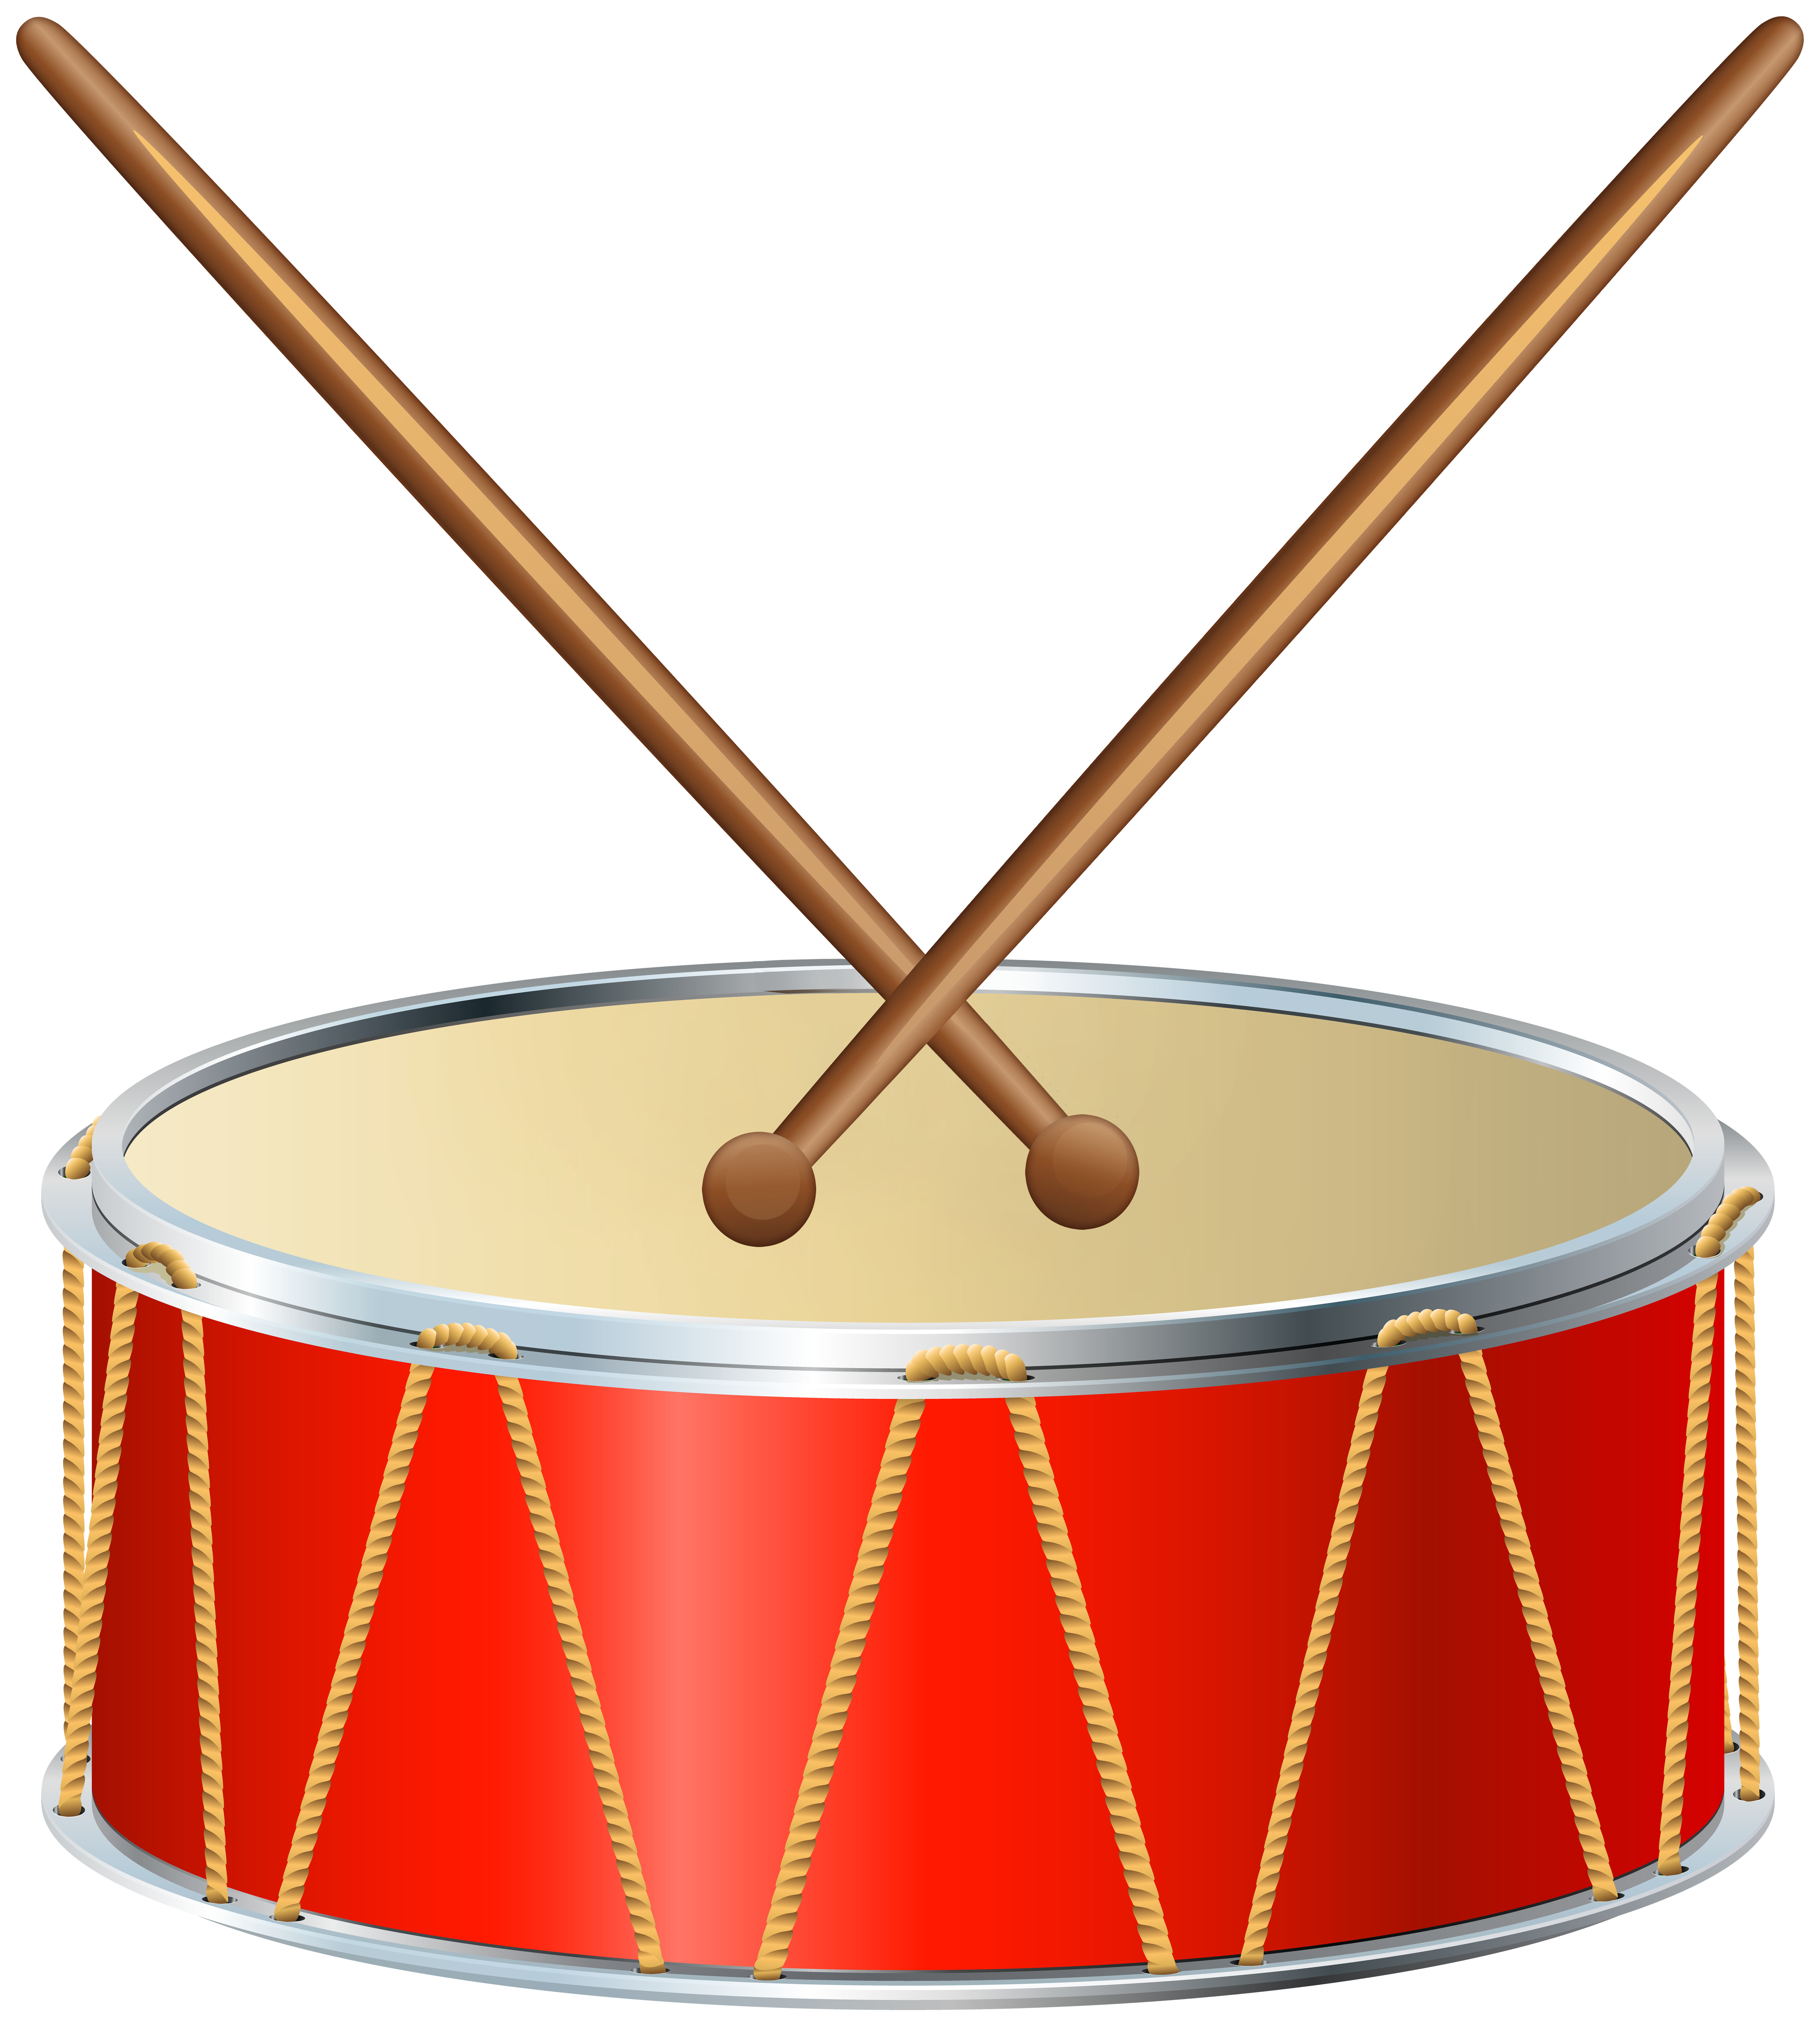 graphic royalty free library Png clip art gallery. Drum clipart.